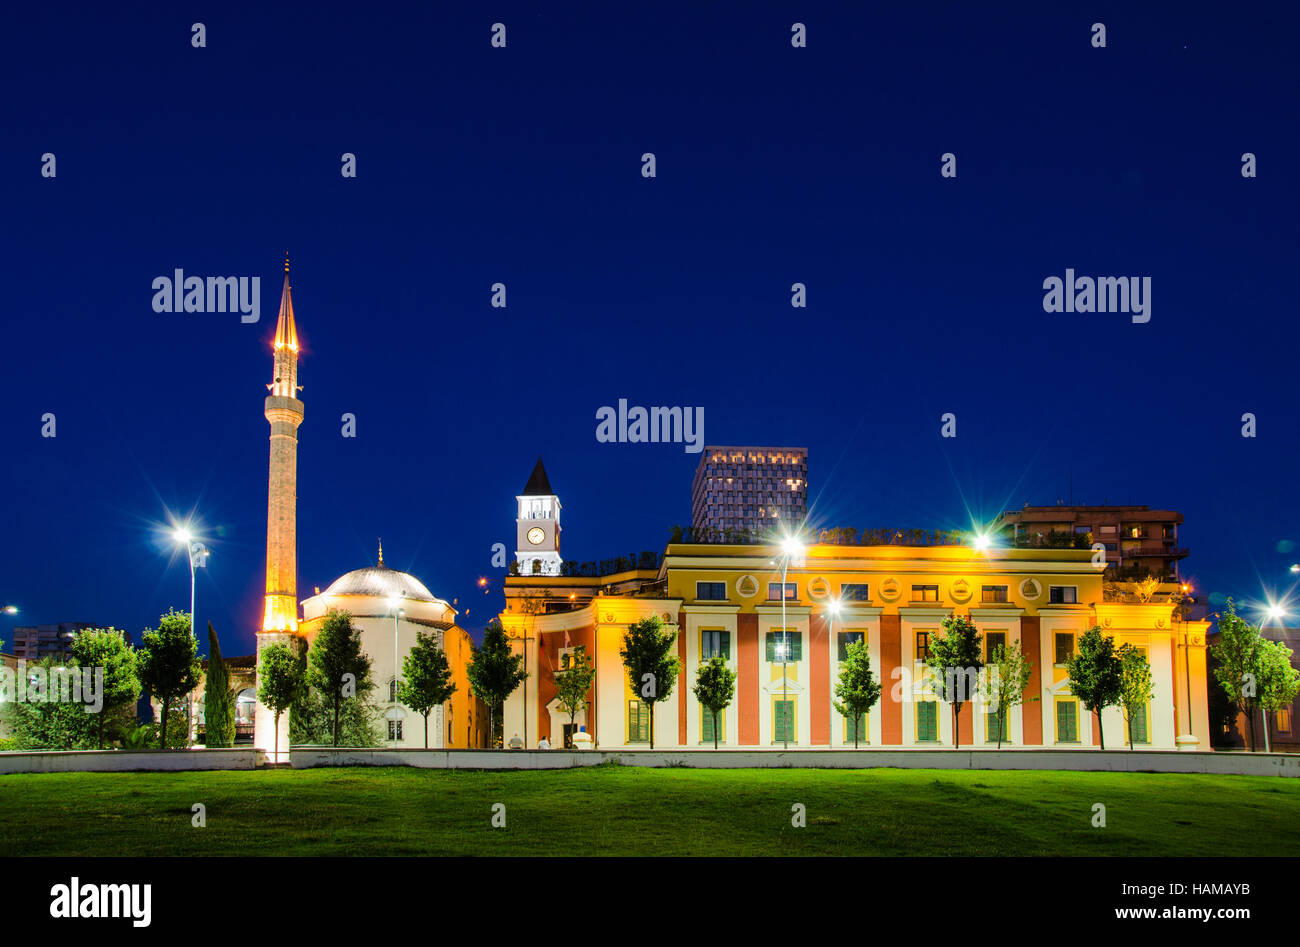 The Et'hem Bey Mosque in Skanderbeg Square, at night, Tirana - Albania - Stock Image